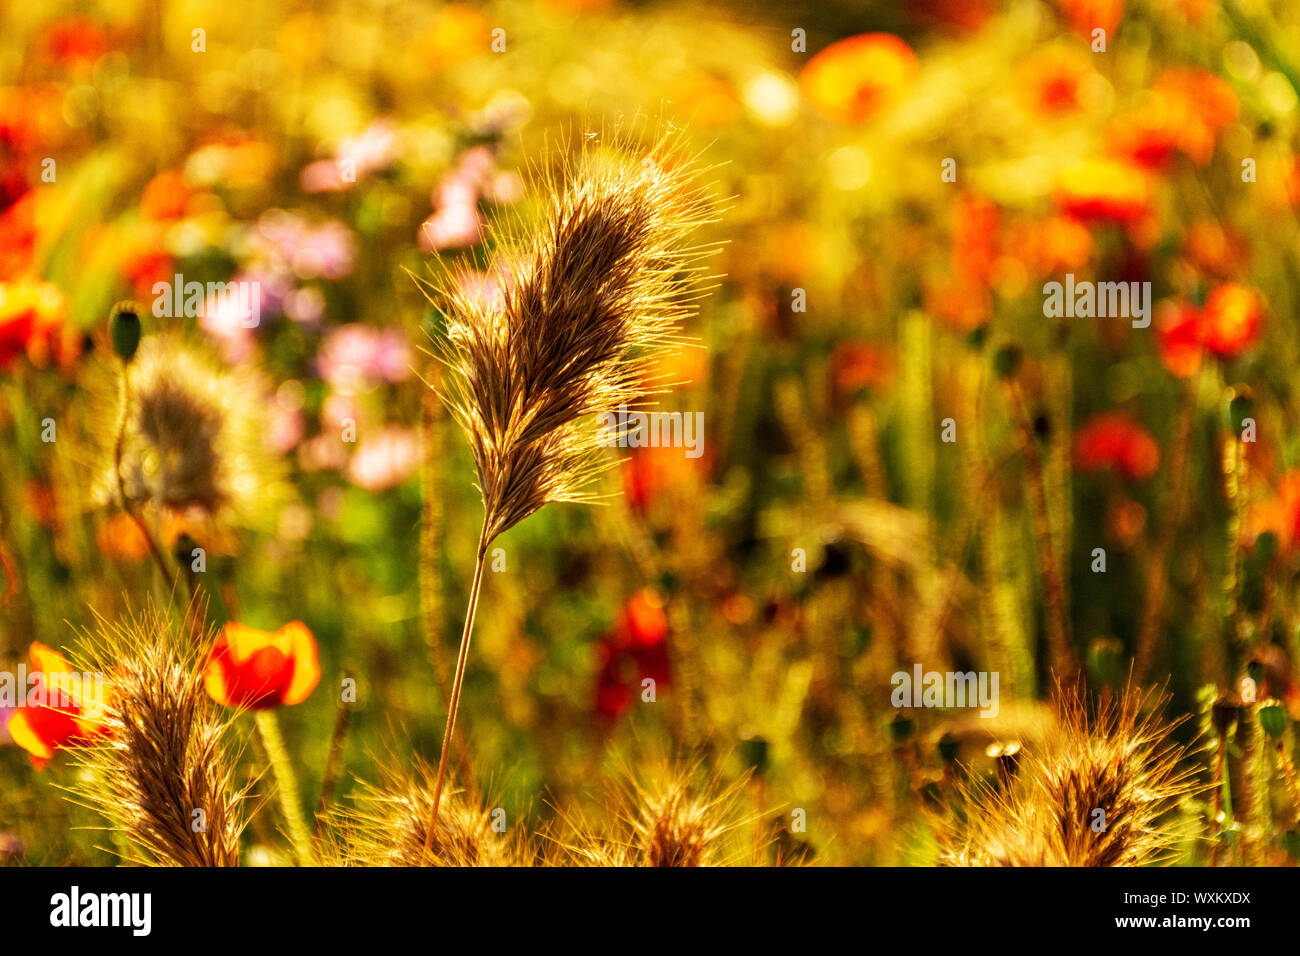 Golden spike in a defocused background of poppies and wild flowers.. Bokeh. Stock Photo